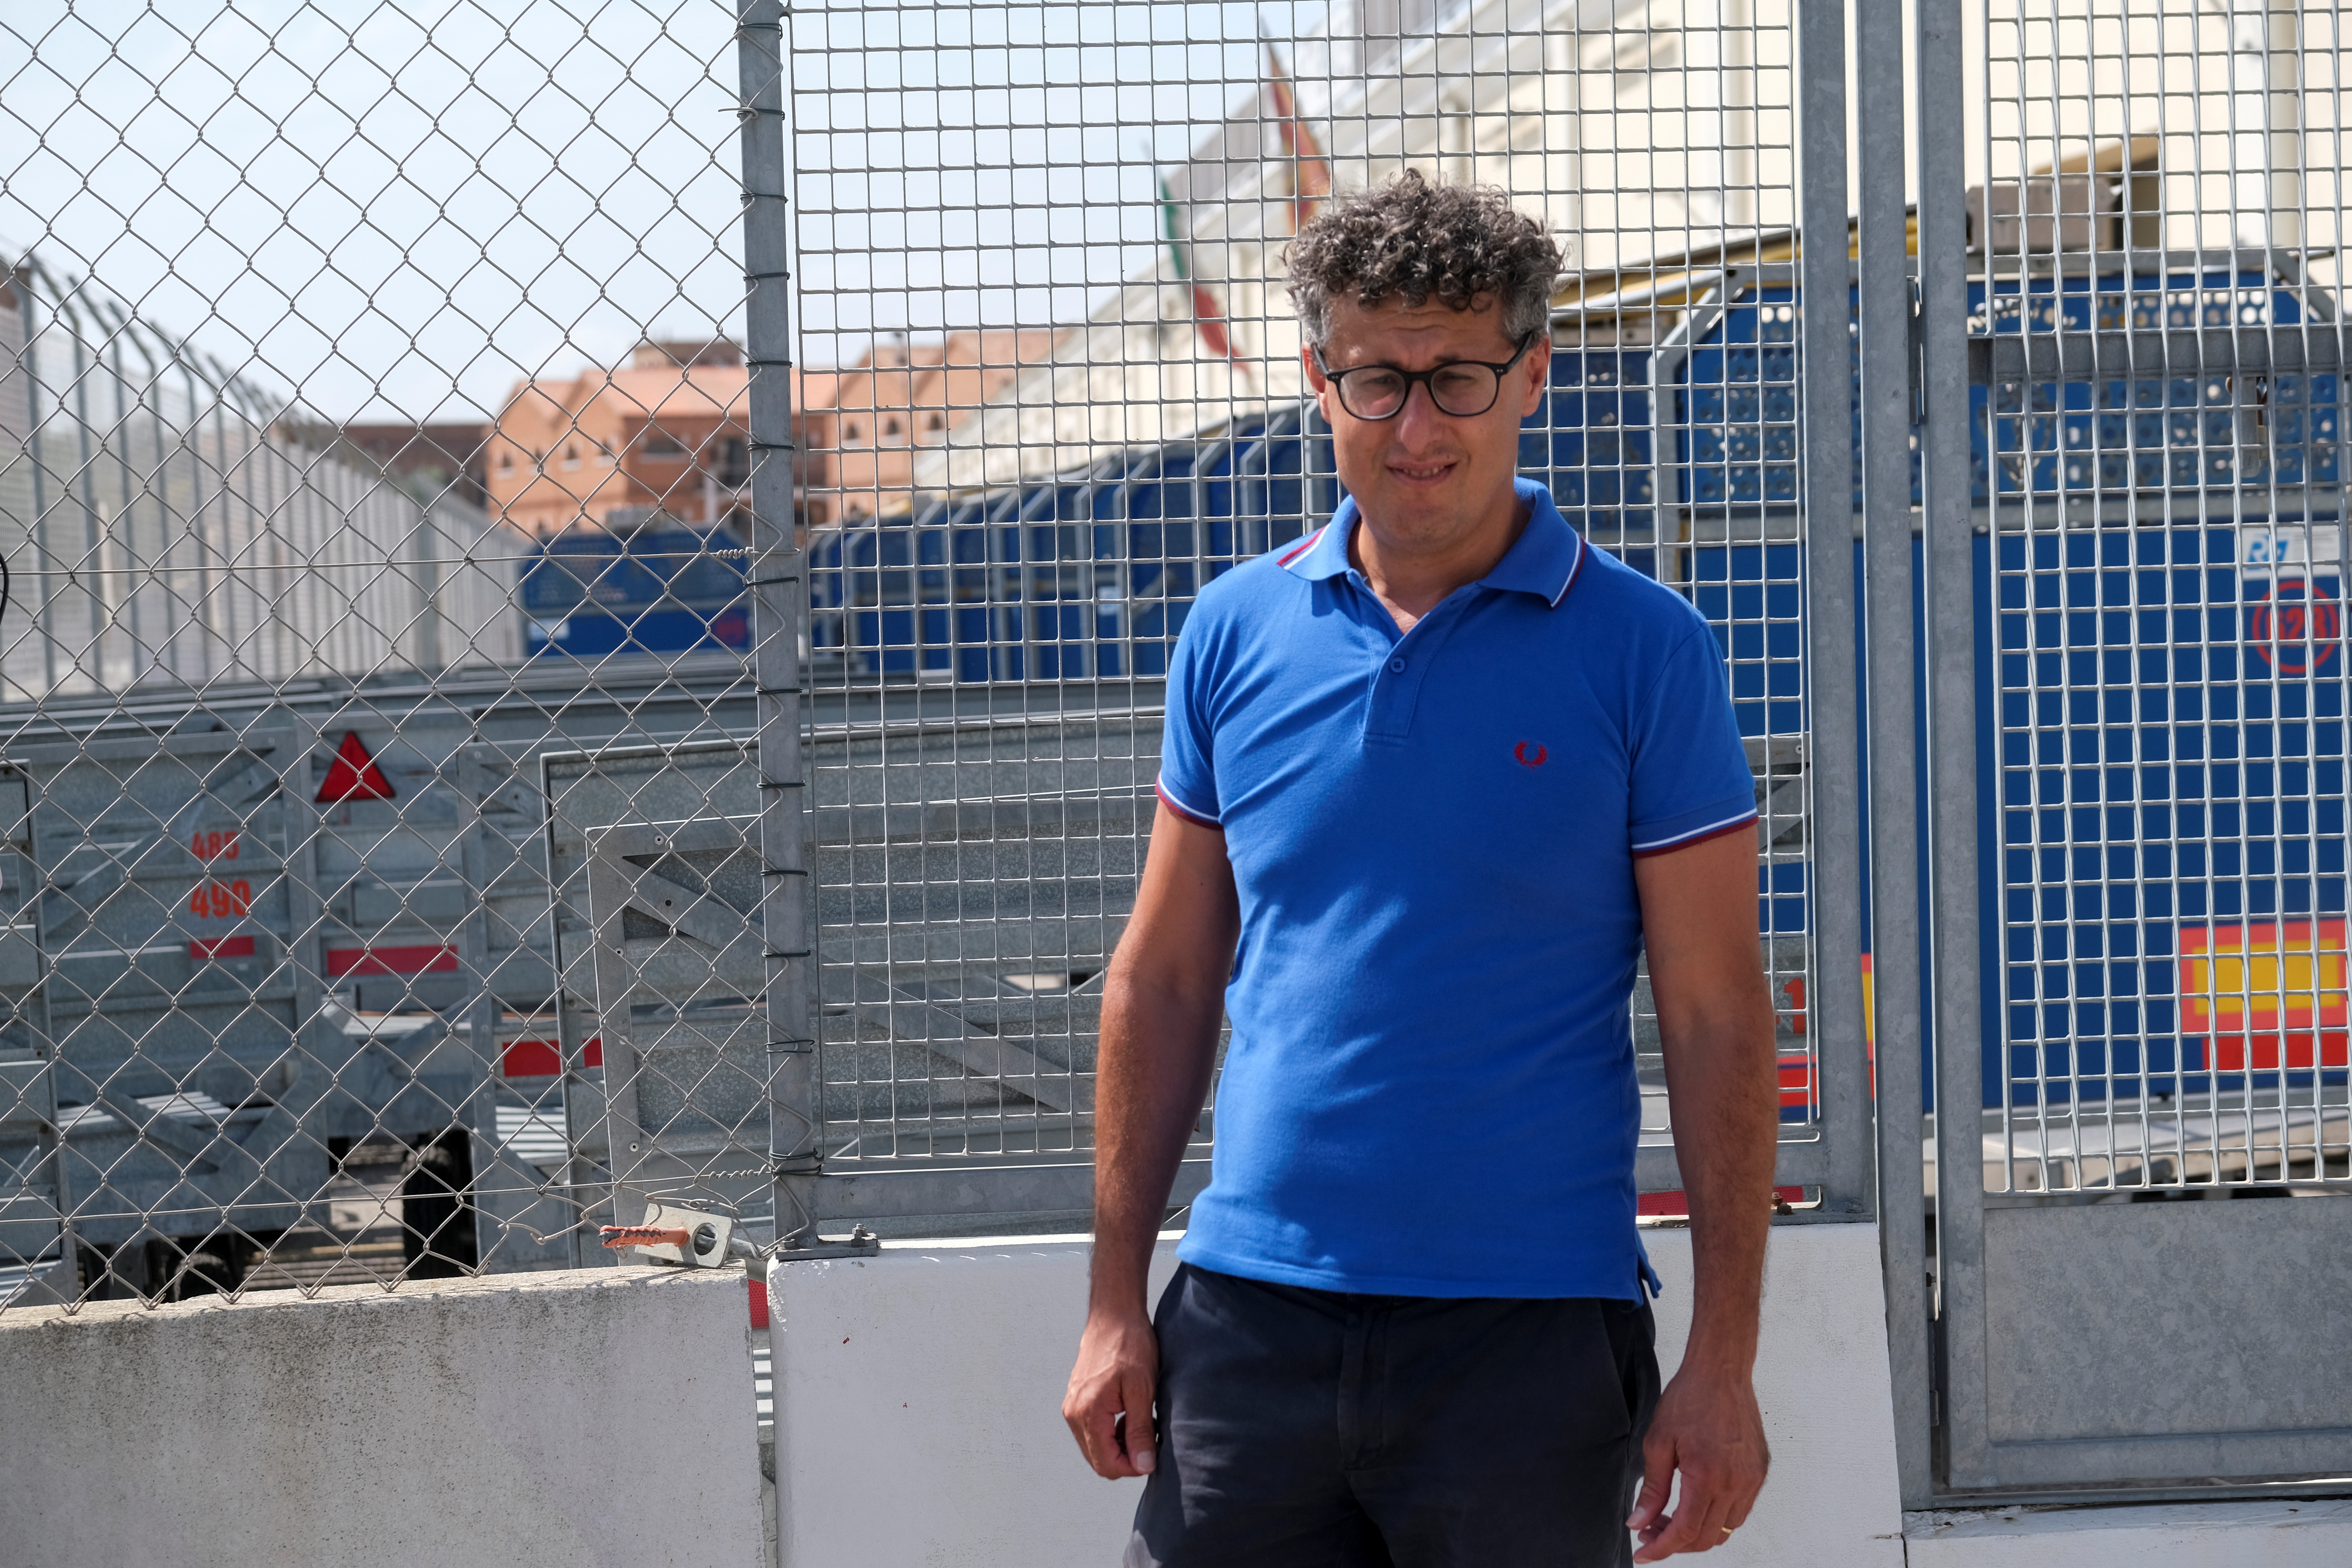 Antonio Velleca from the porters cooperative, attends an interview as Venice gears up for a ban on cruise liners that becomes effective on August 1, moving to end years of hesitation and putting the demands of residents and culture bodies above those of the tourist industry, in Venice, Italy, July 27, 2021.  REUTERS/Manuel Silvestri